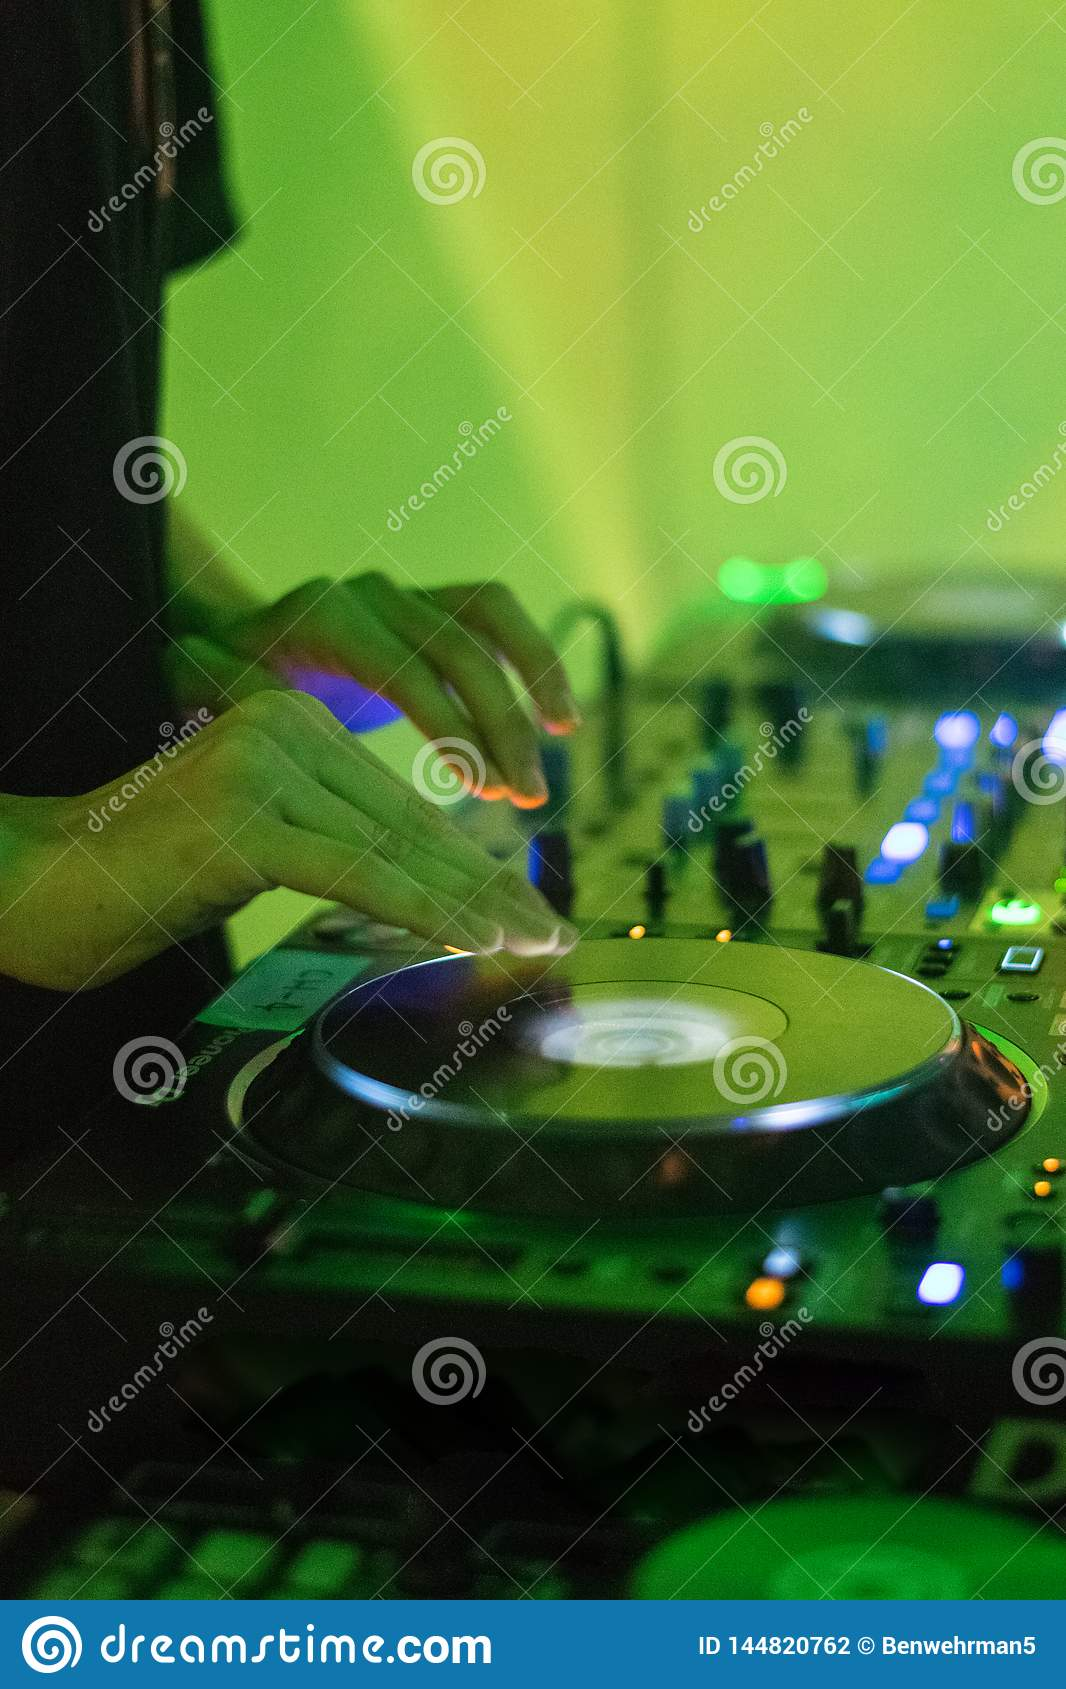 DJ Playing Electronic Music